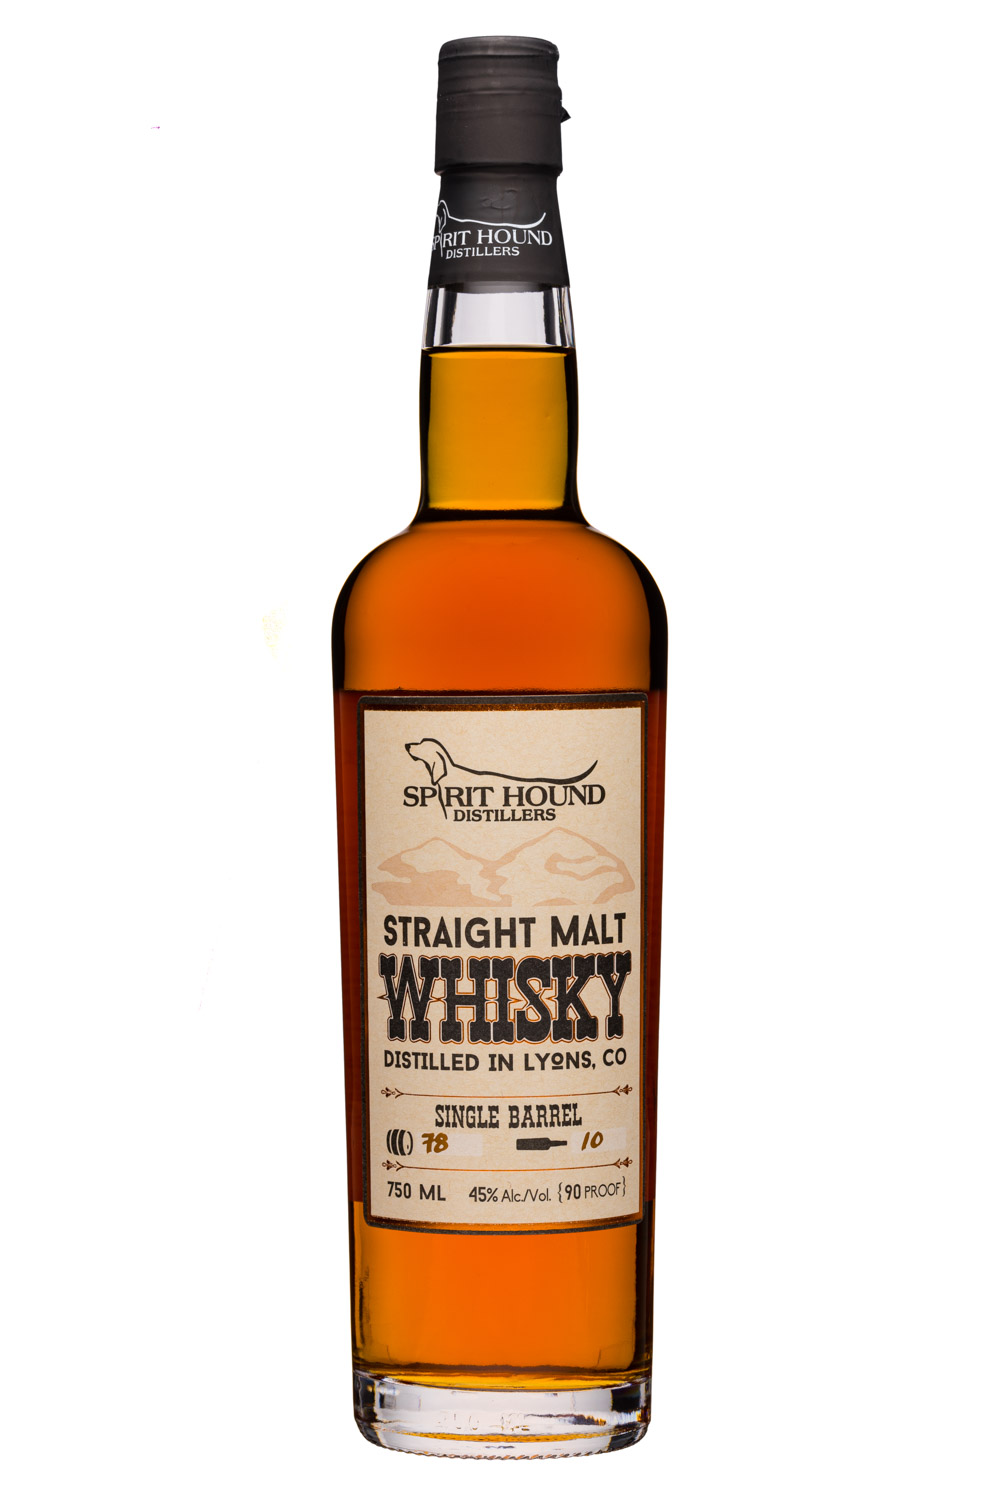 Straight Malt Whisky